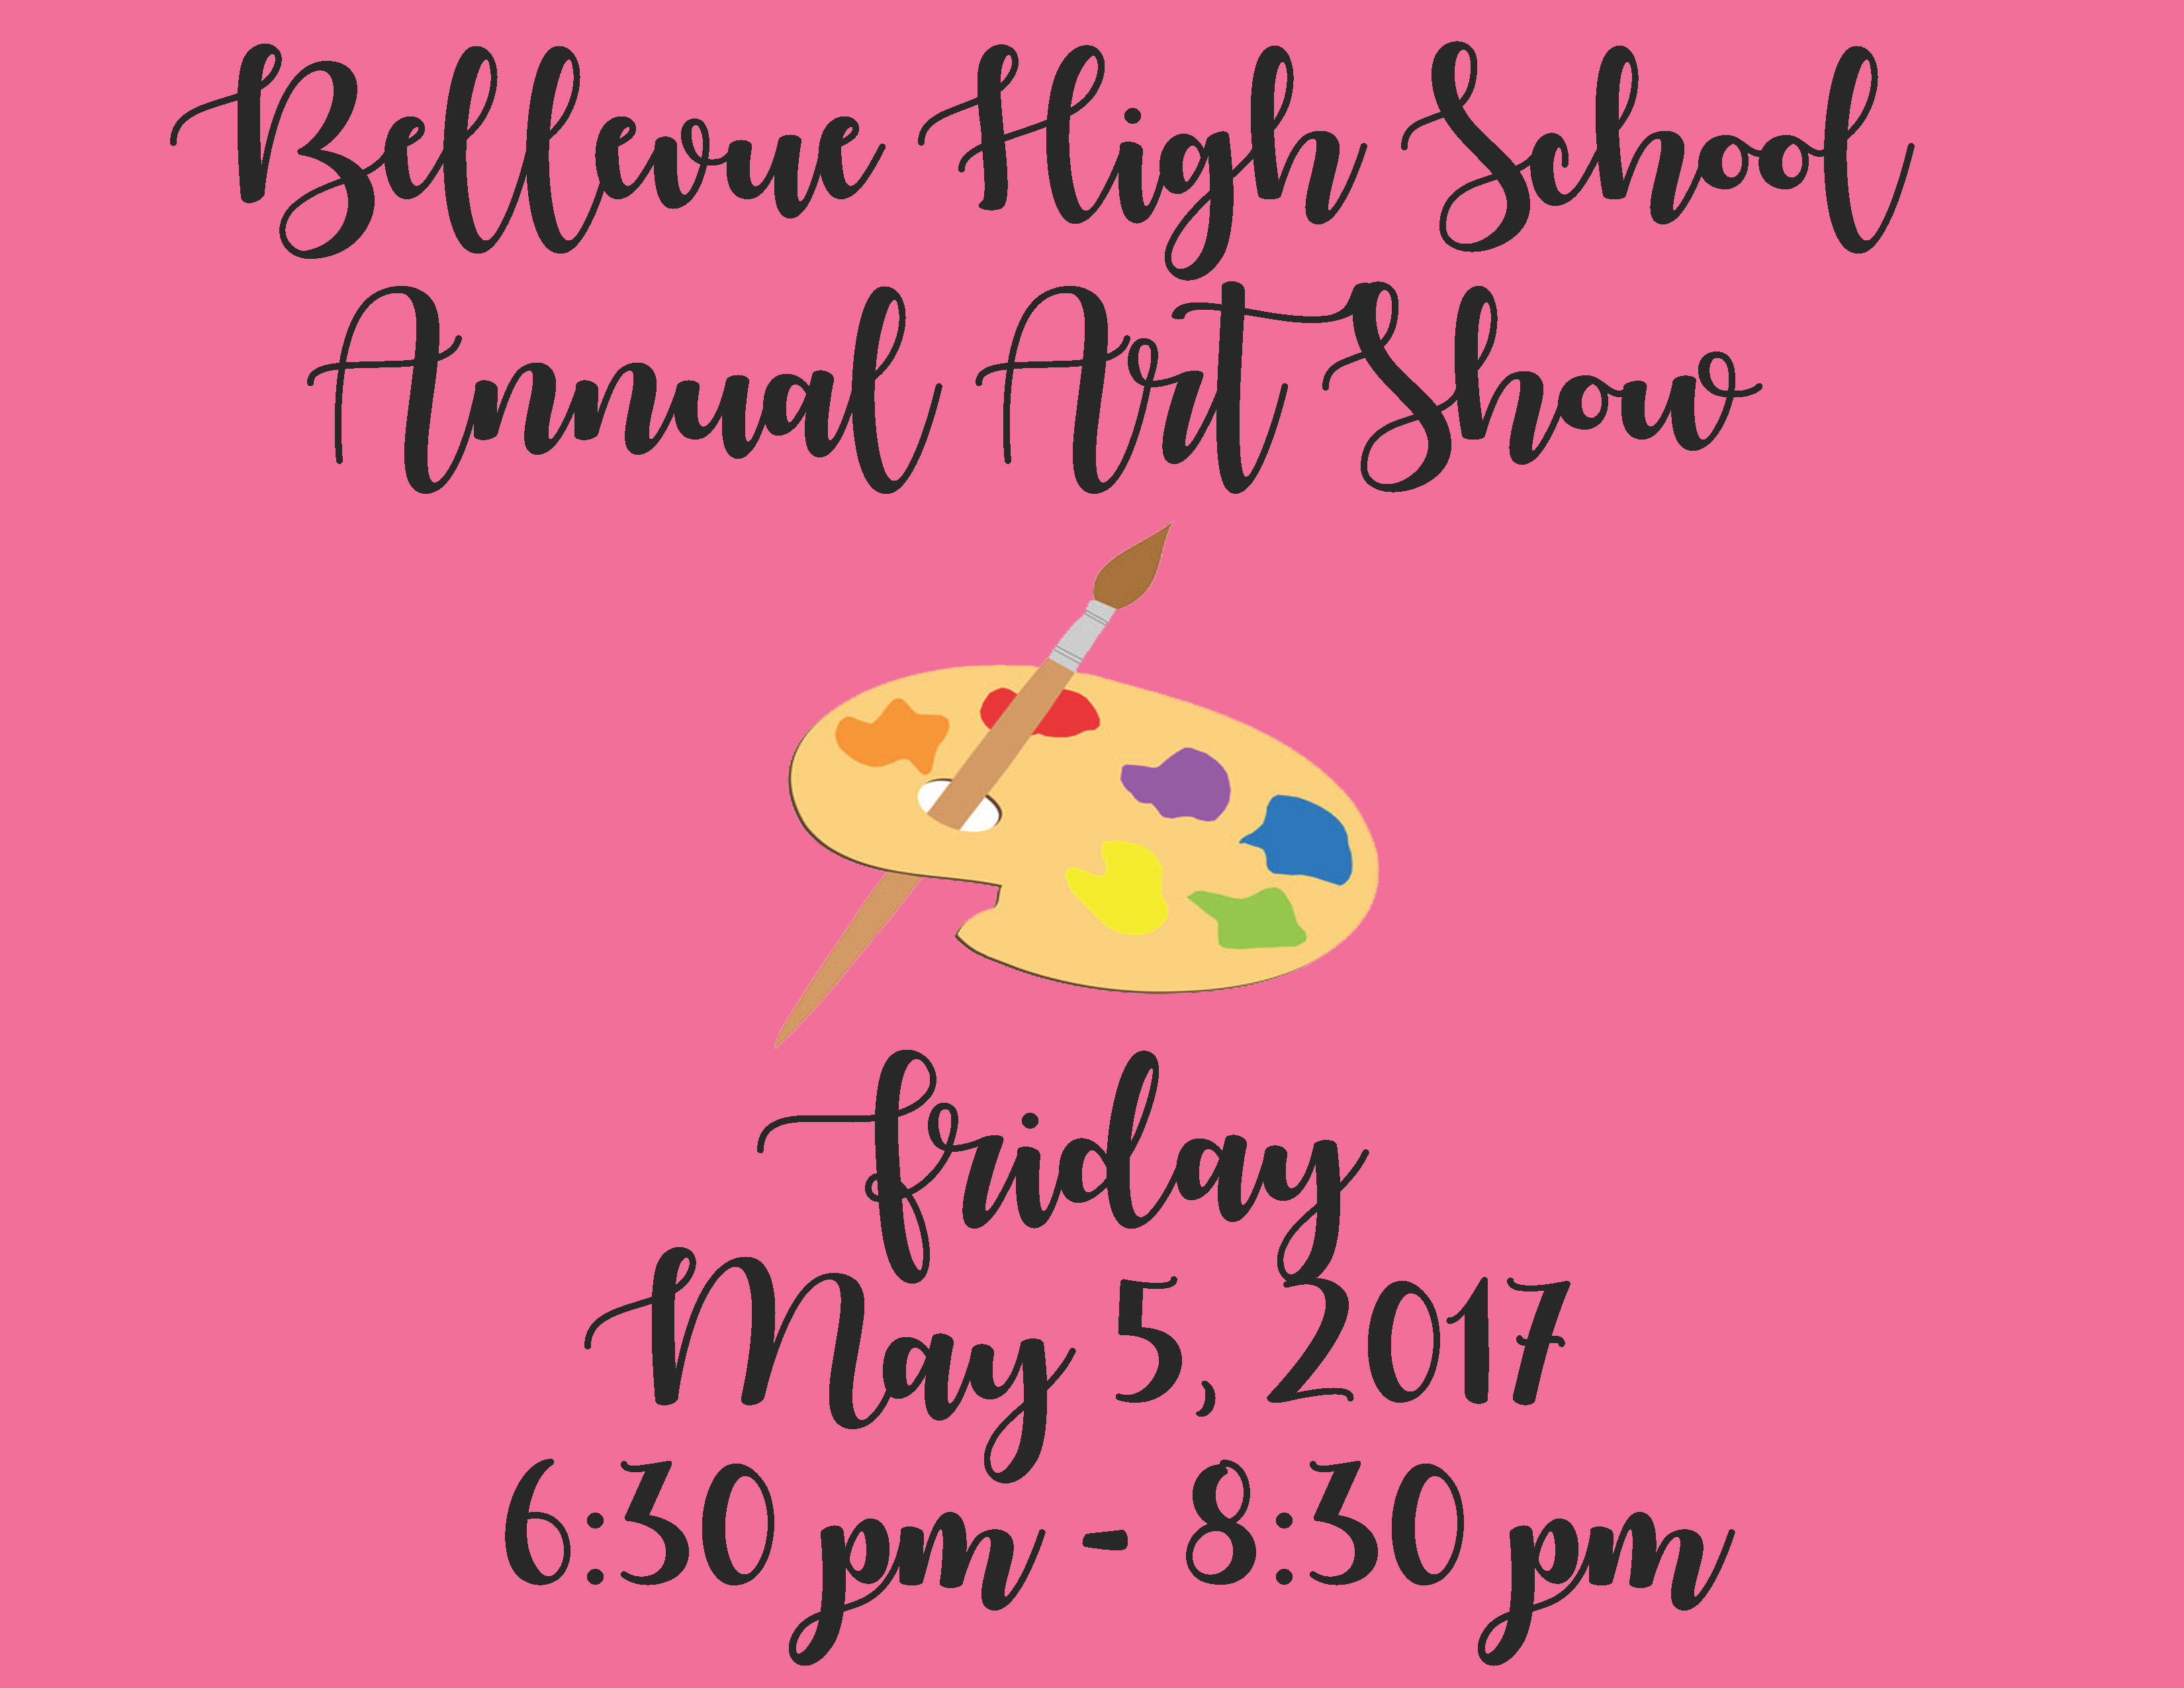 BHS Art Show May, 5 6:30-8:30